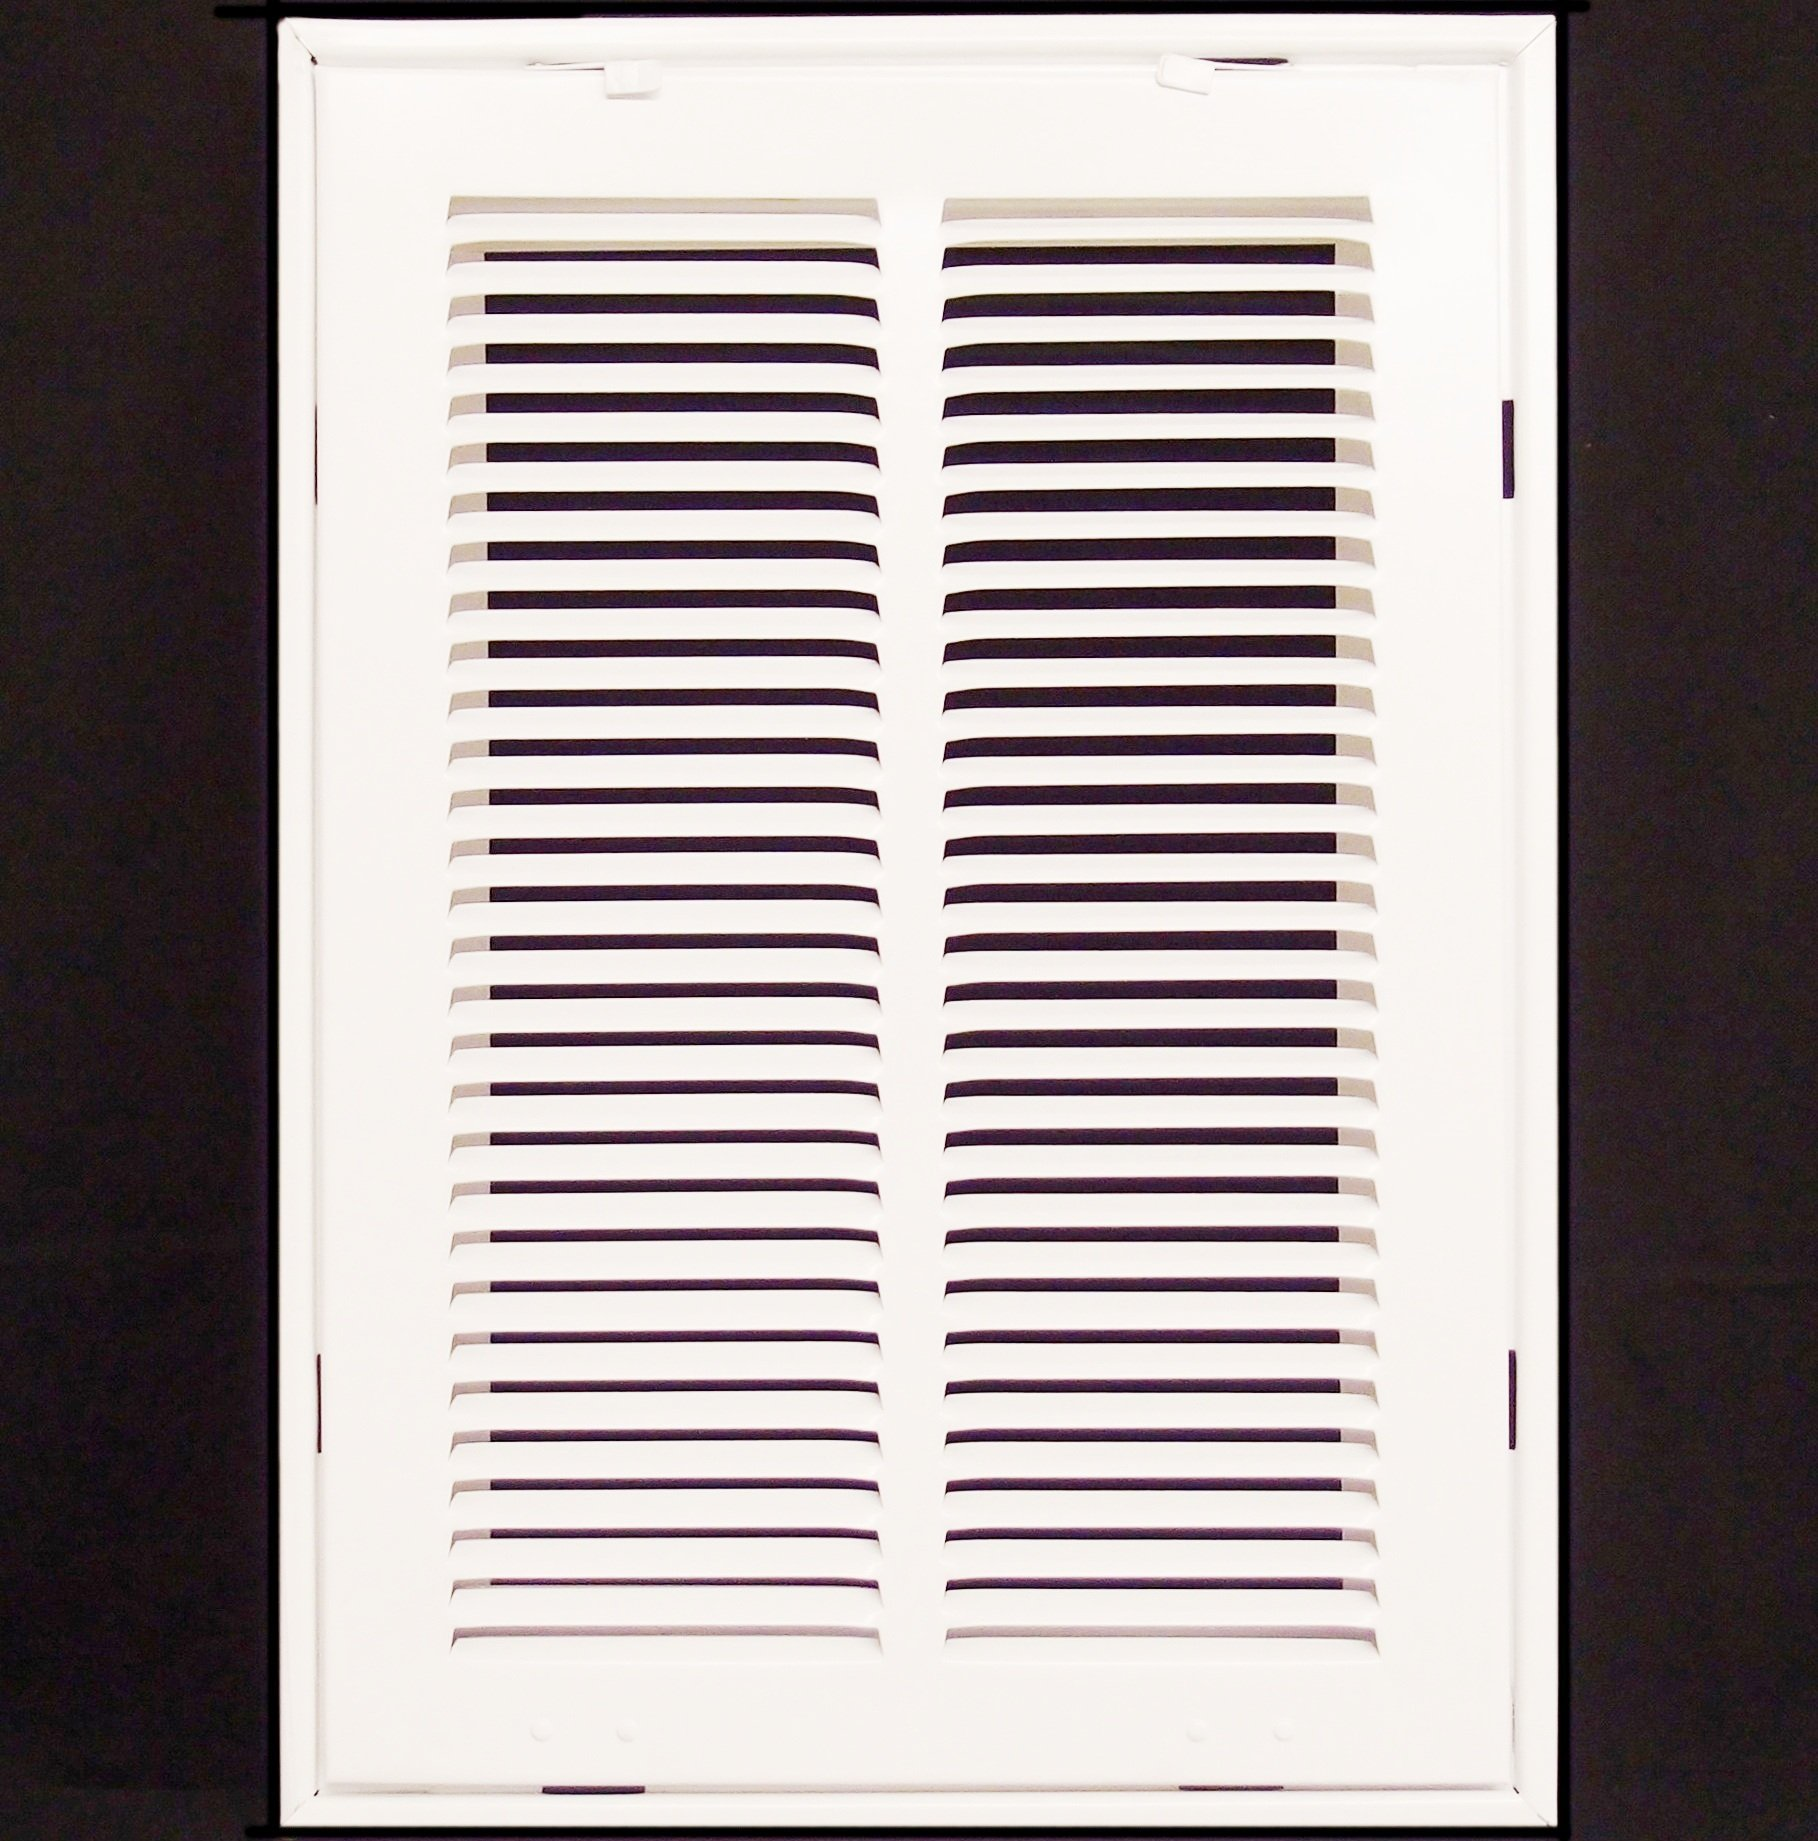 12'' X 18 Steel Return Air Filter Grille for 1'' Filter - Removable Face/Door - HVAC DUCT COVER - Flat Stamped Face - White [Outer Dimensions: 14.5''w X 20.5''h]